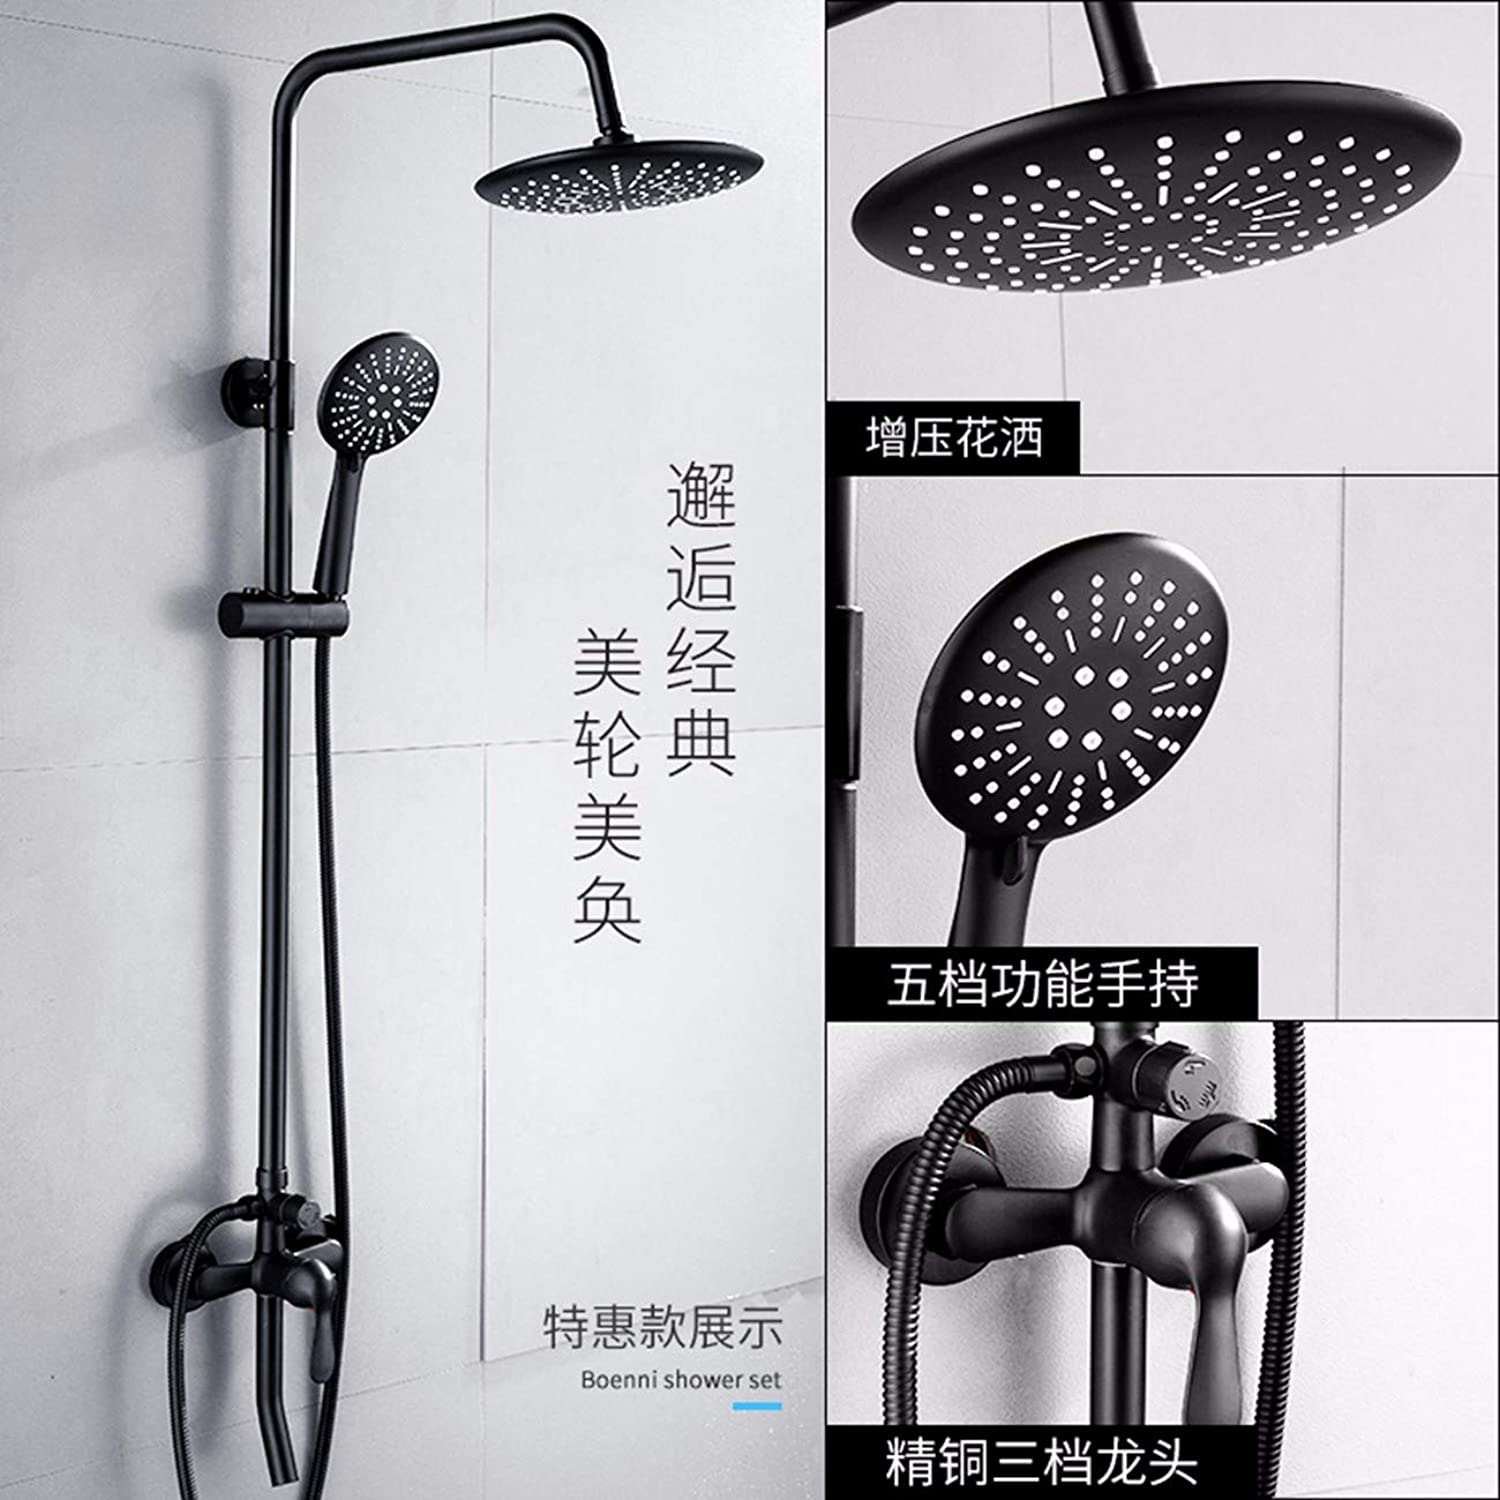 Black Shower Shower Suit Household All-Copper American Bathroom Bathroom Antique Constant Temperature Shower Shower,A